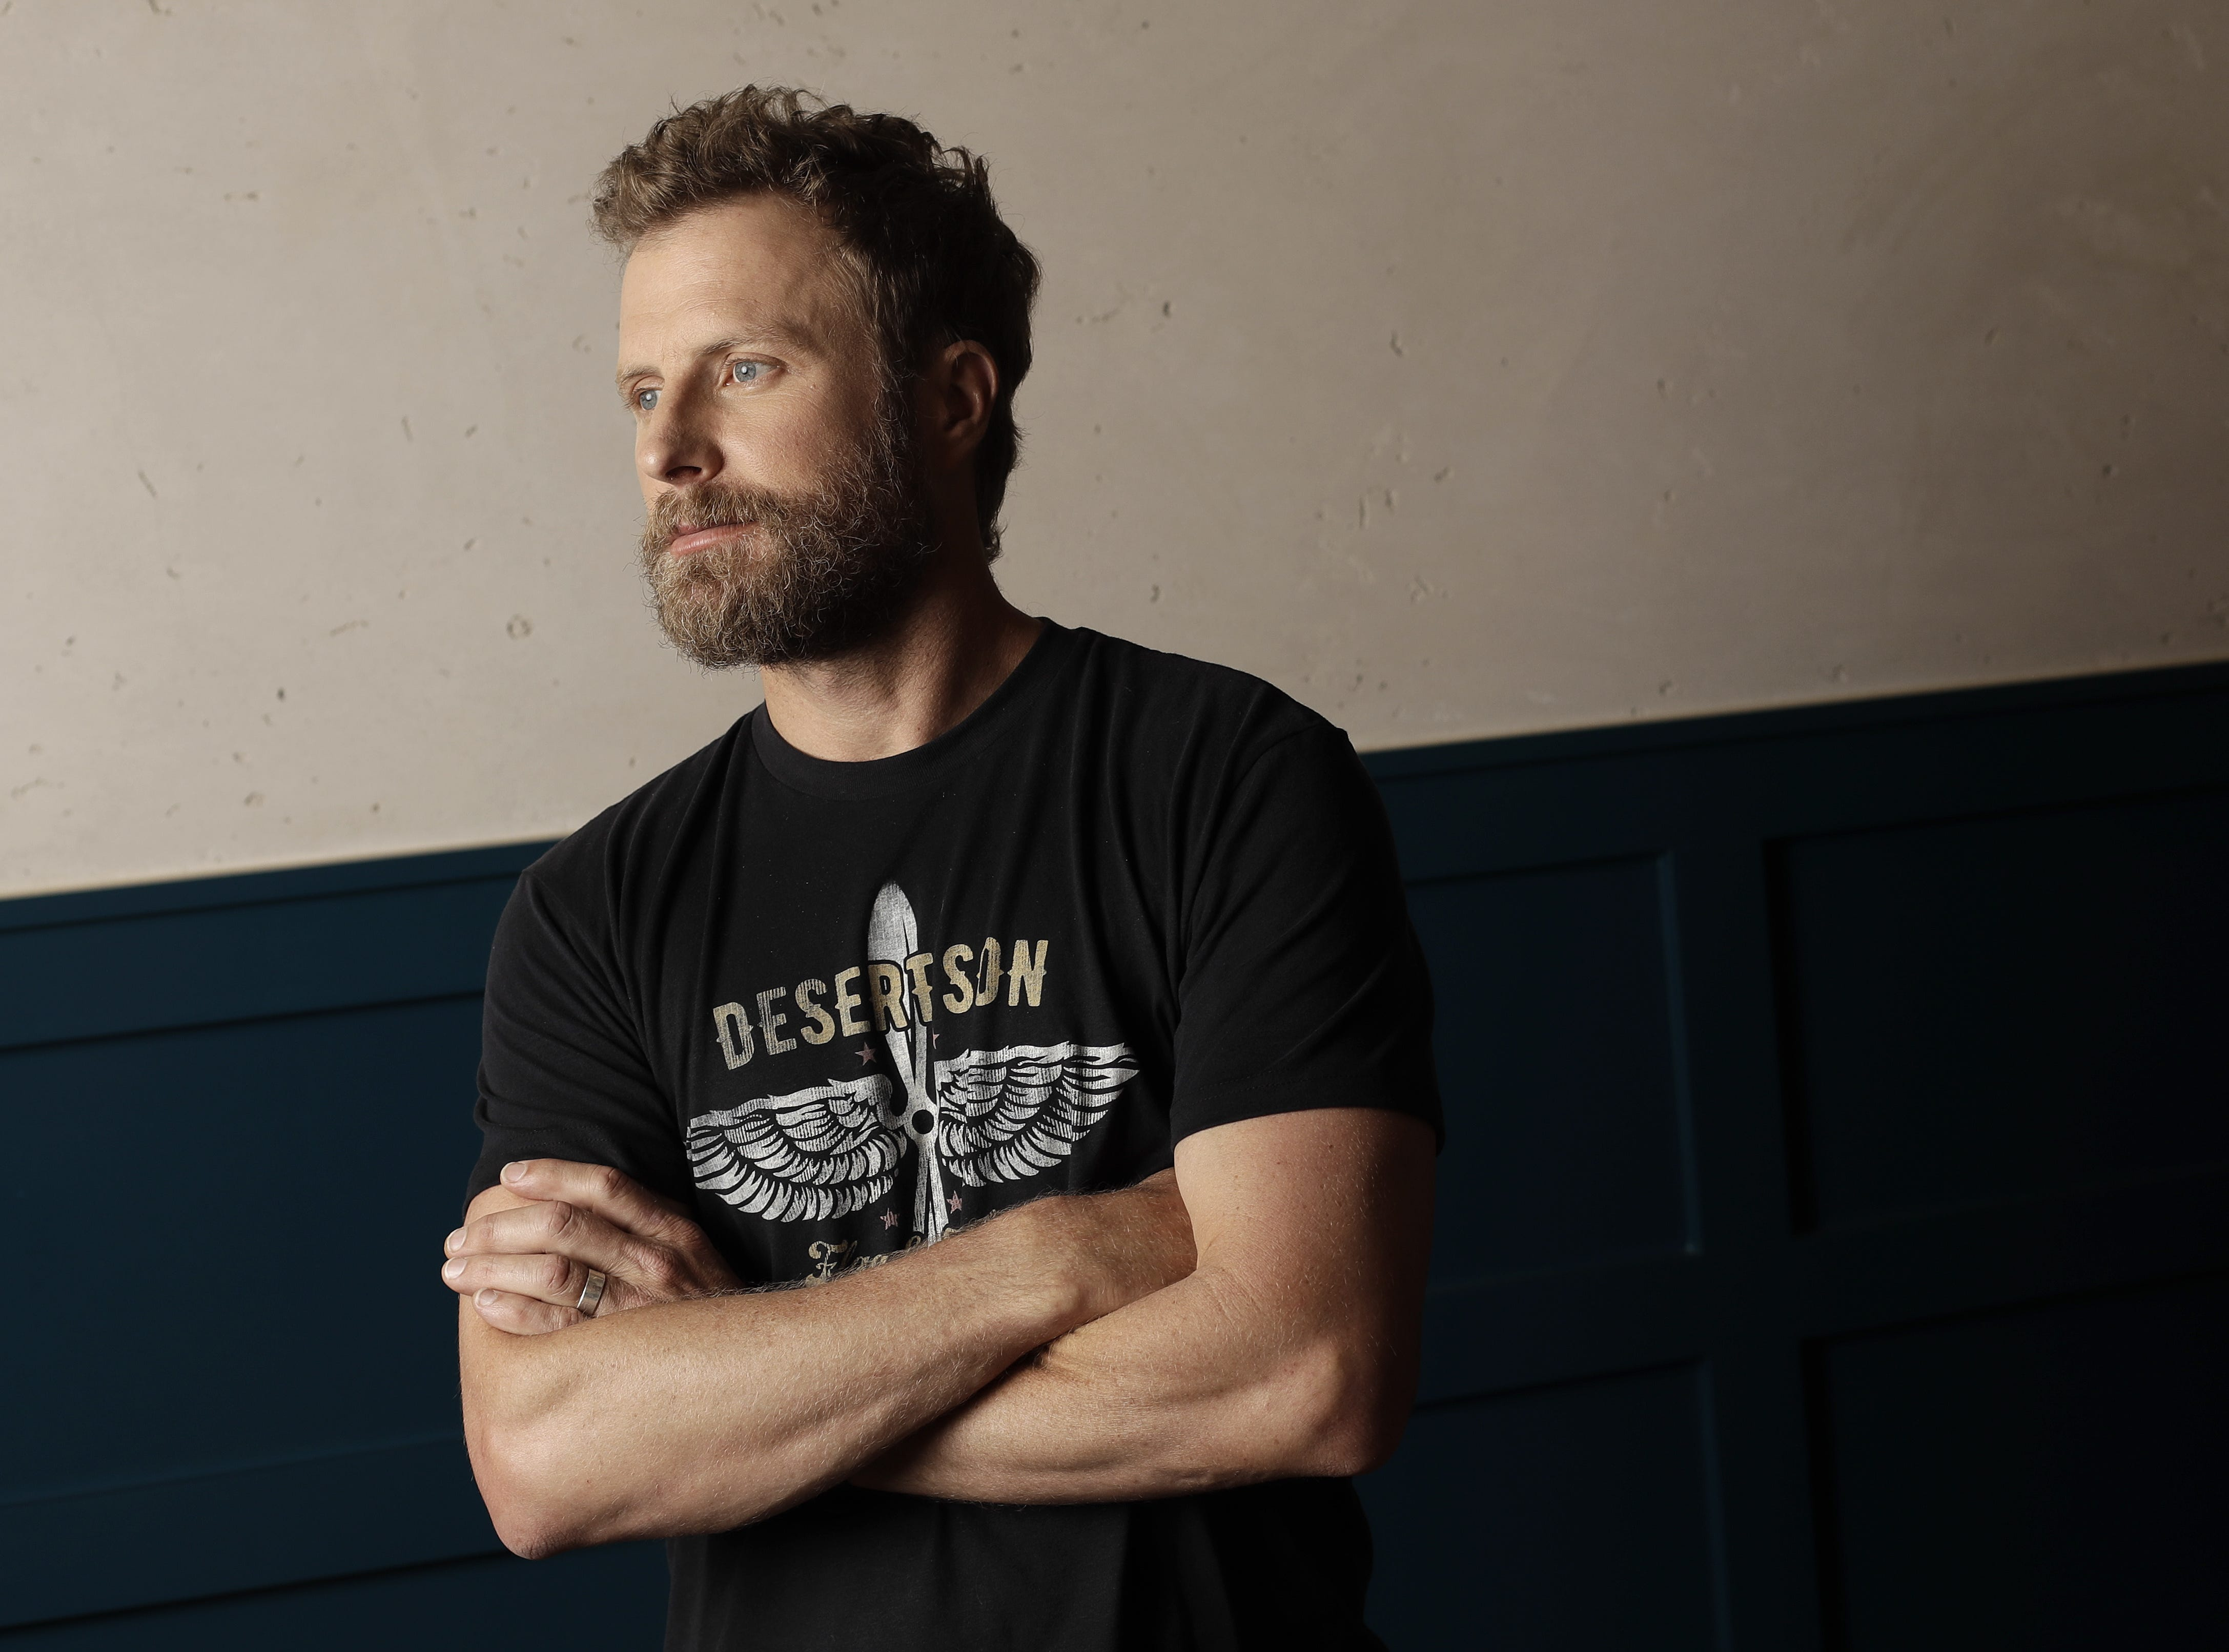 Dierks Bentley attends a photo session on May 7, 2018.